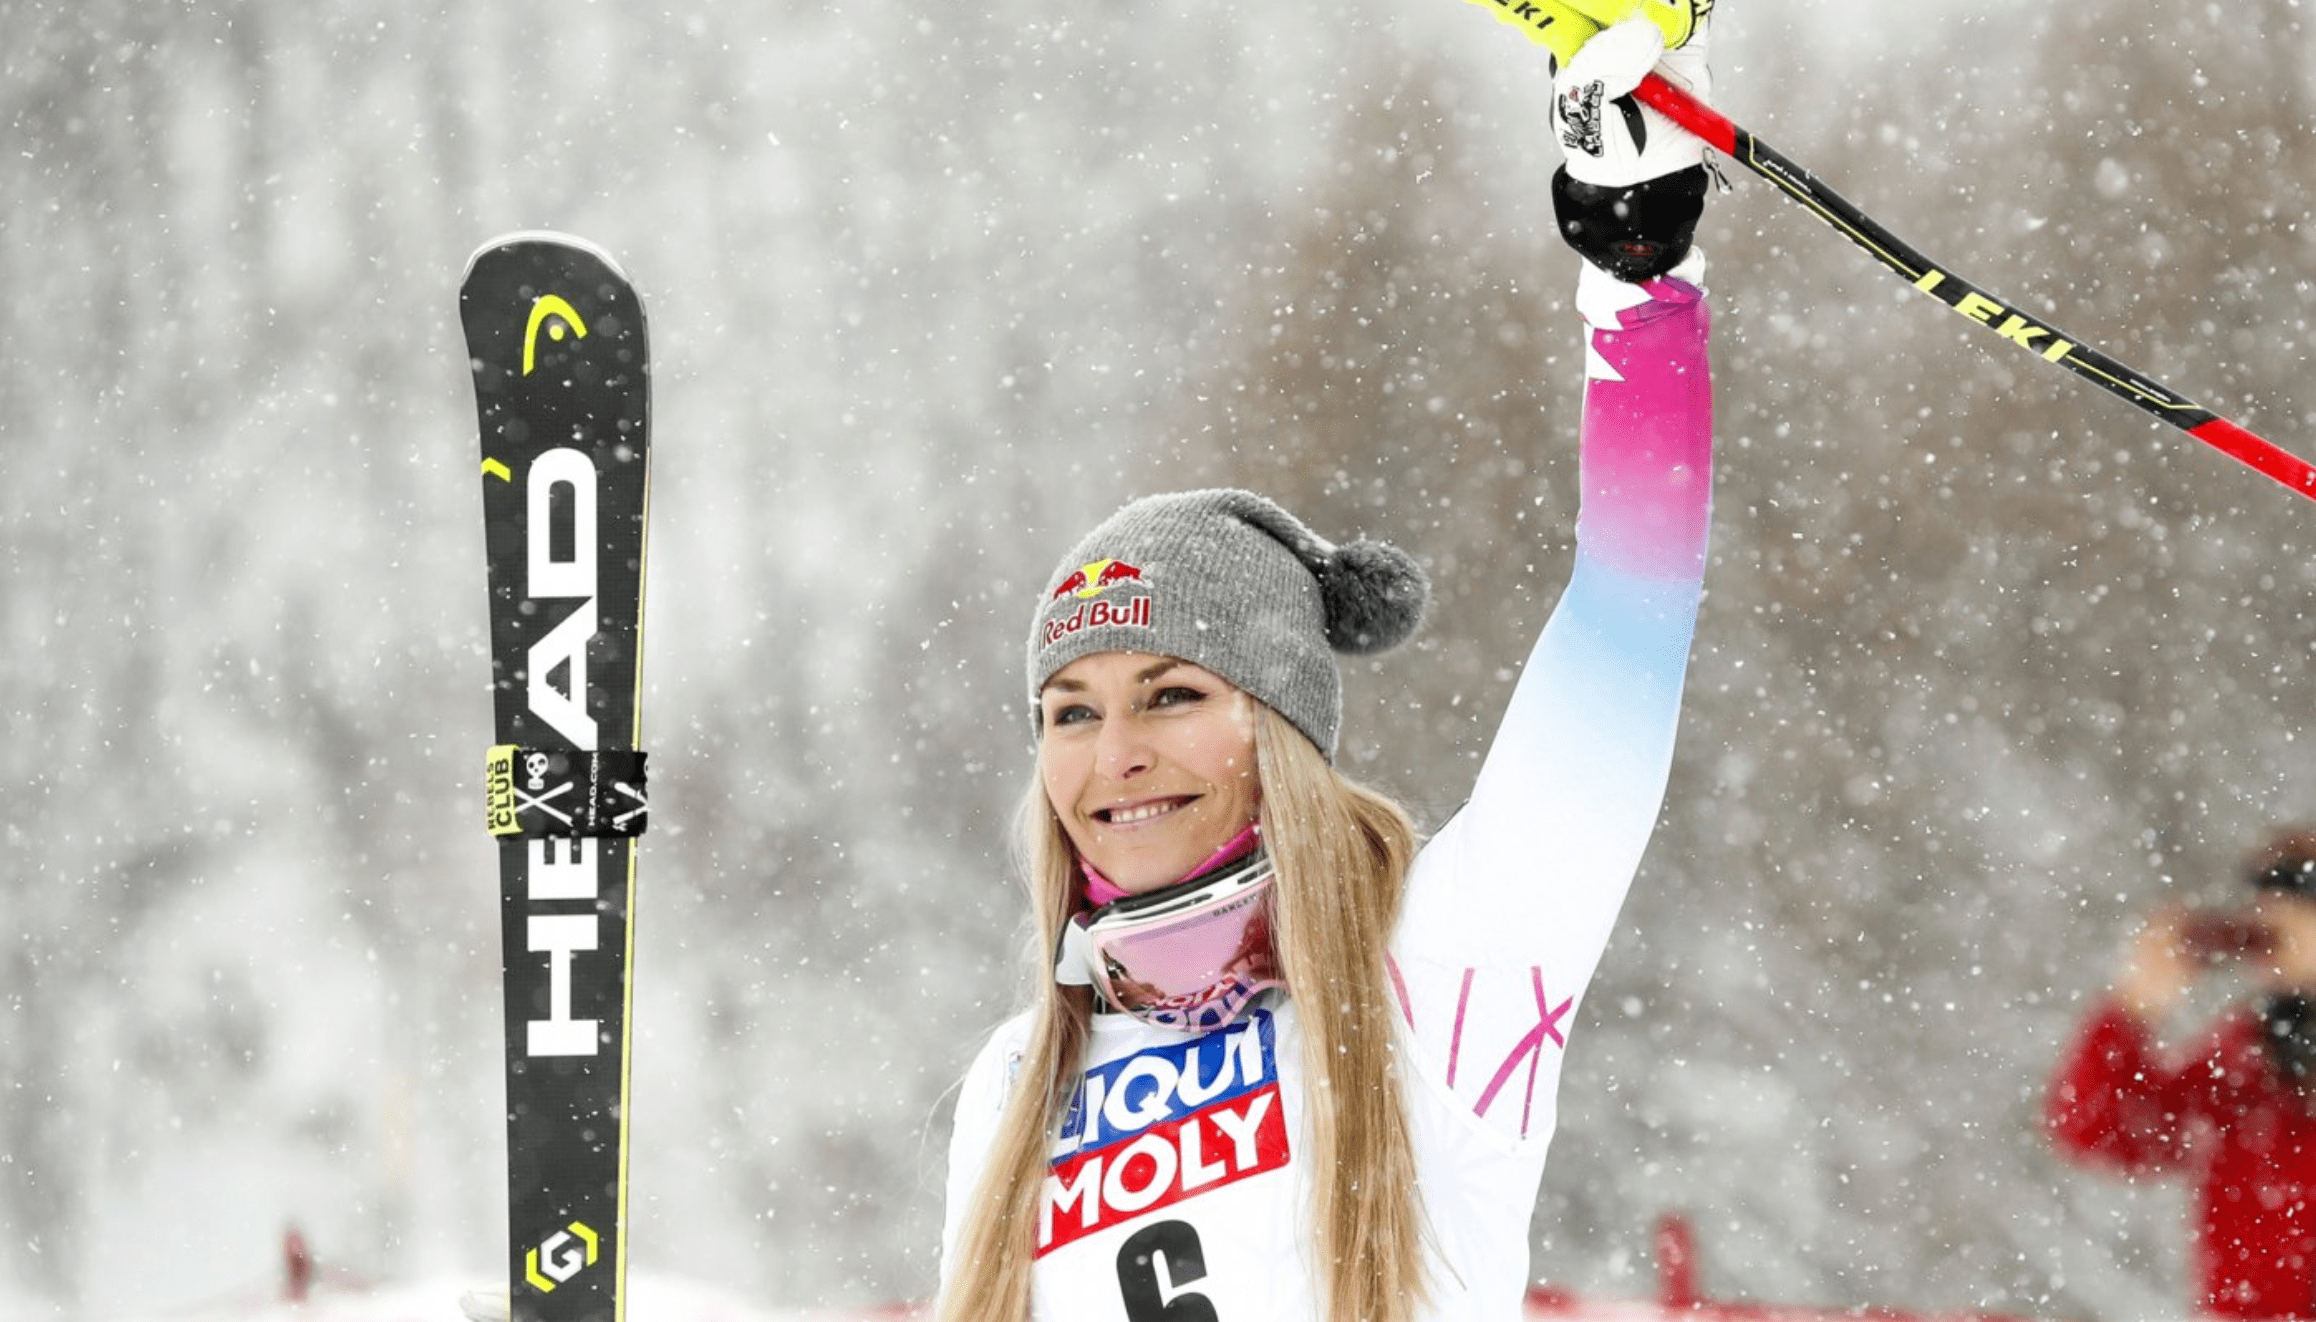 After countless injuries Lindsey Vonn retired from ski racing.